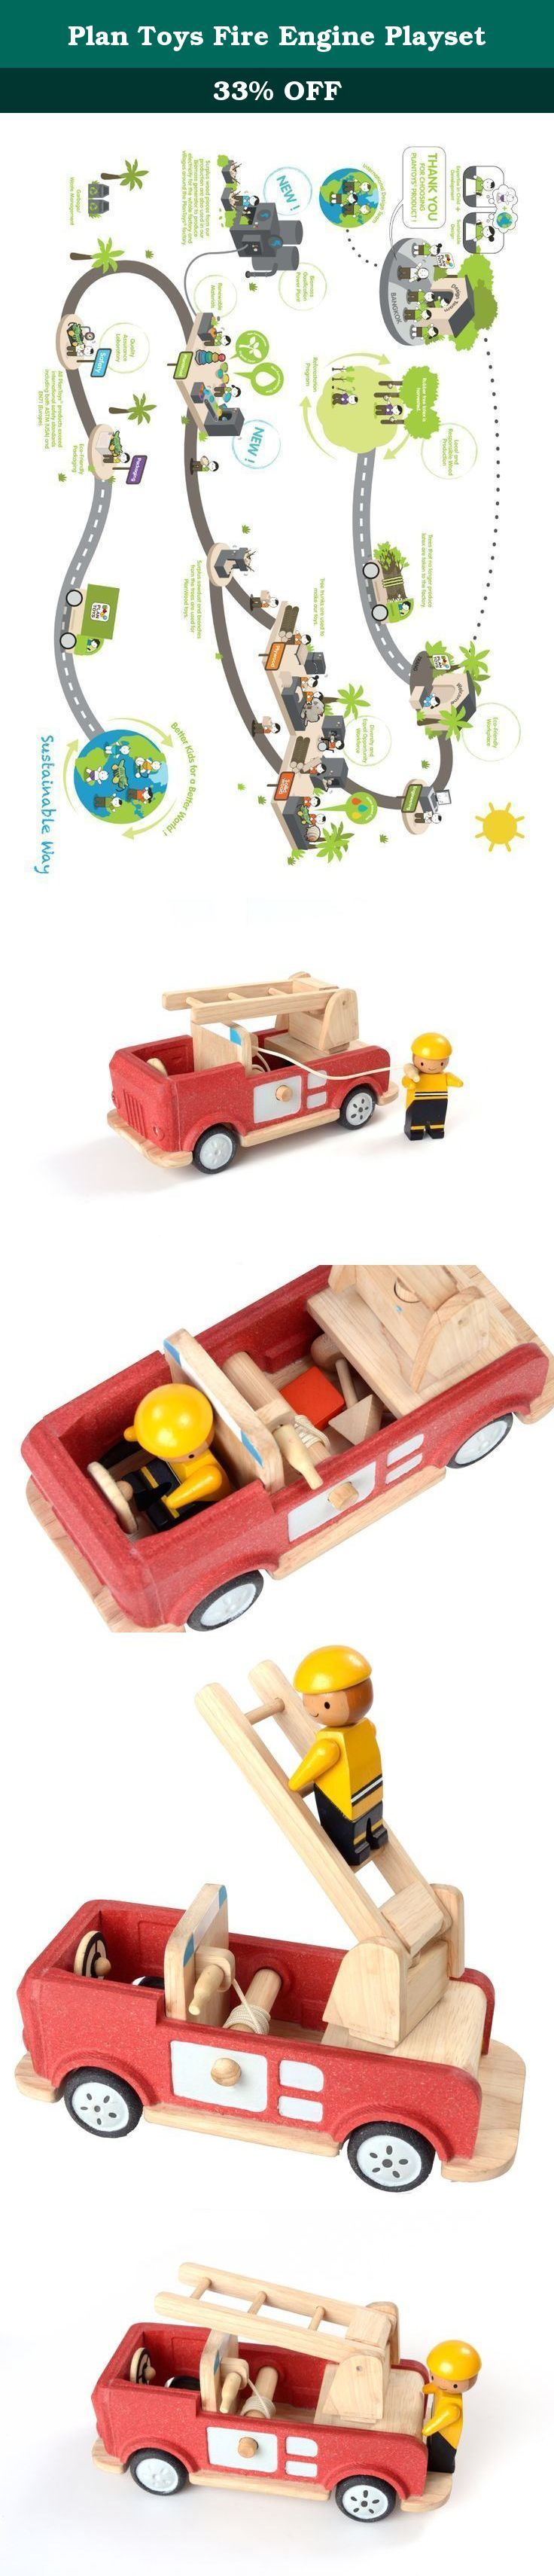 Plan Toys Fire Engine Playset. Fight those fires with PlanToys Fire Engine! Features a rotating ladder, retractable hose, and storage compartment for all your fire-fighting gear. Includes one fire fighter. (Compatible with PlanToys Play House).